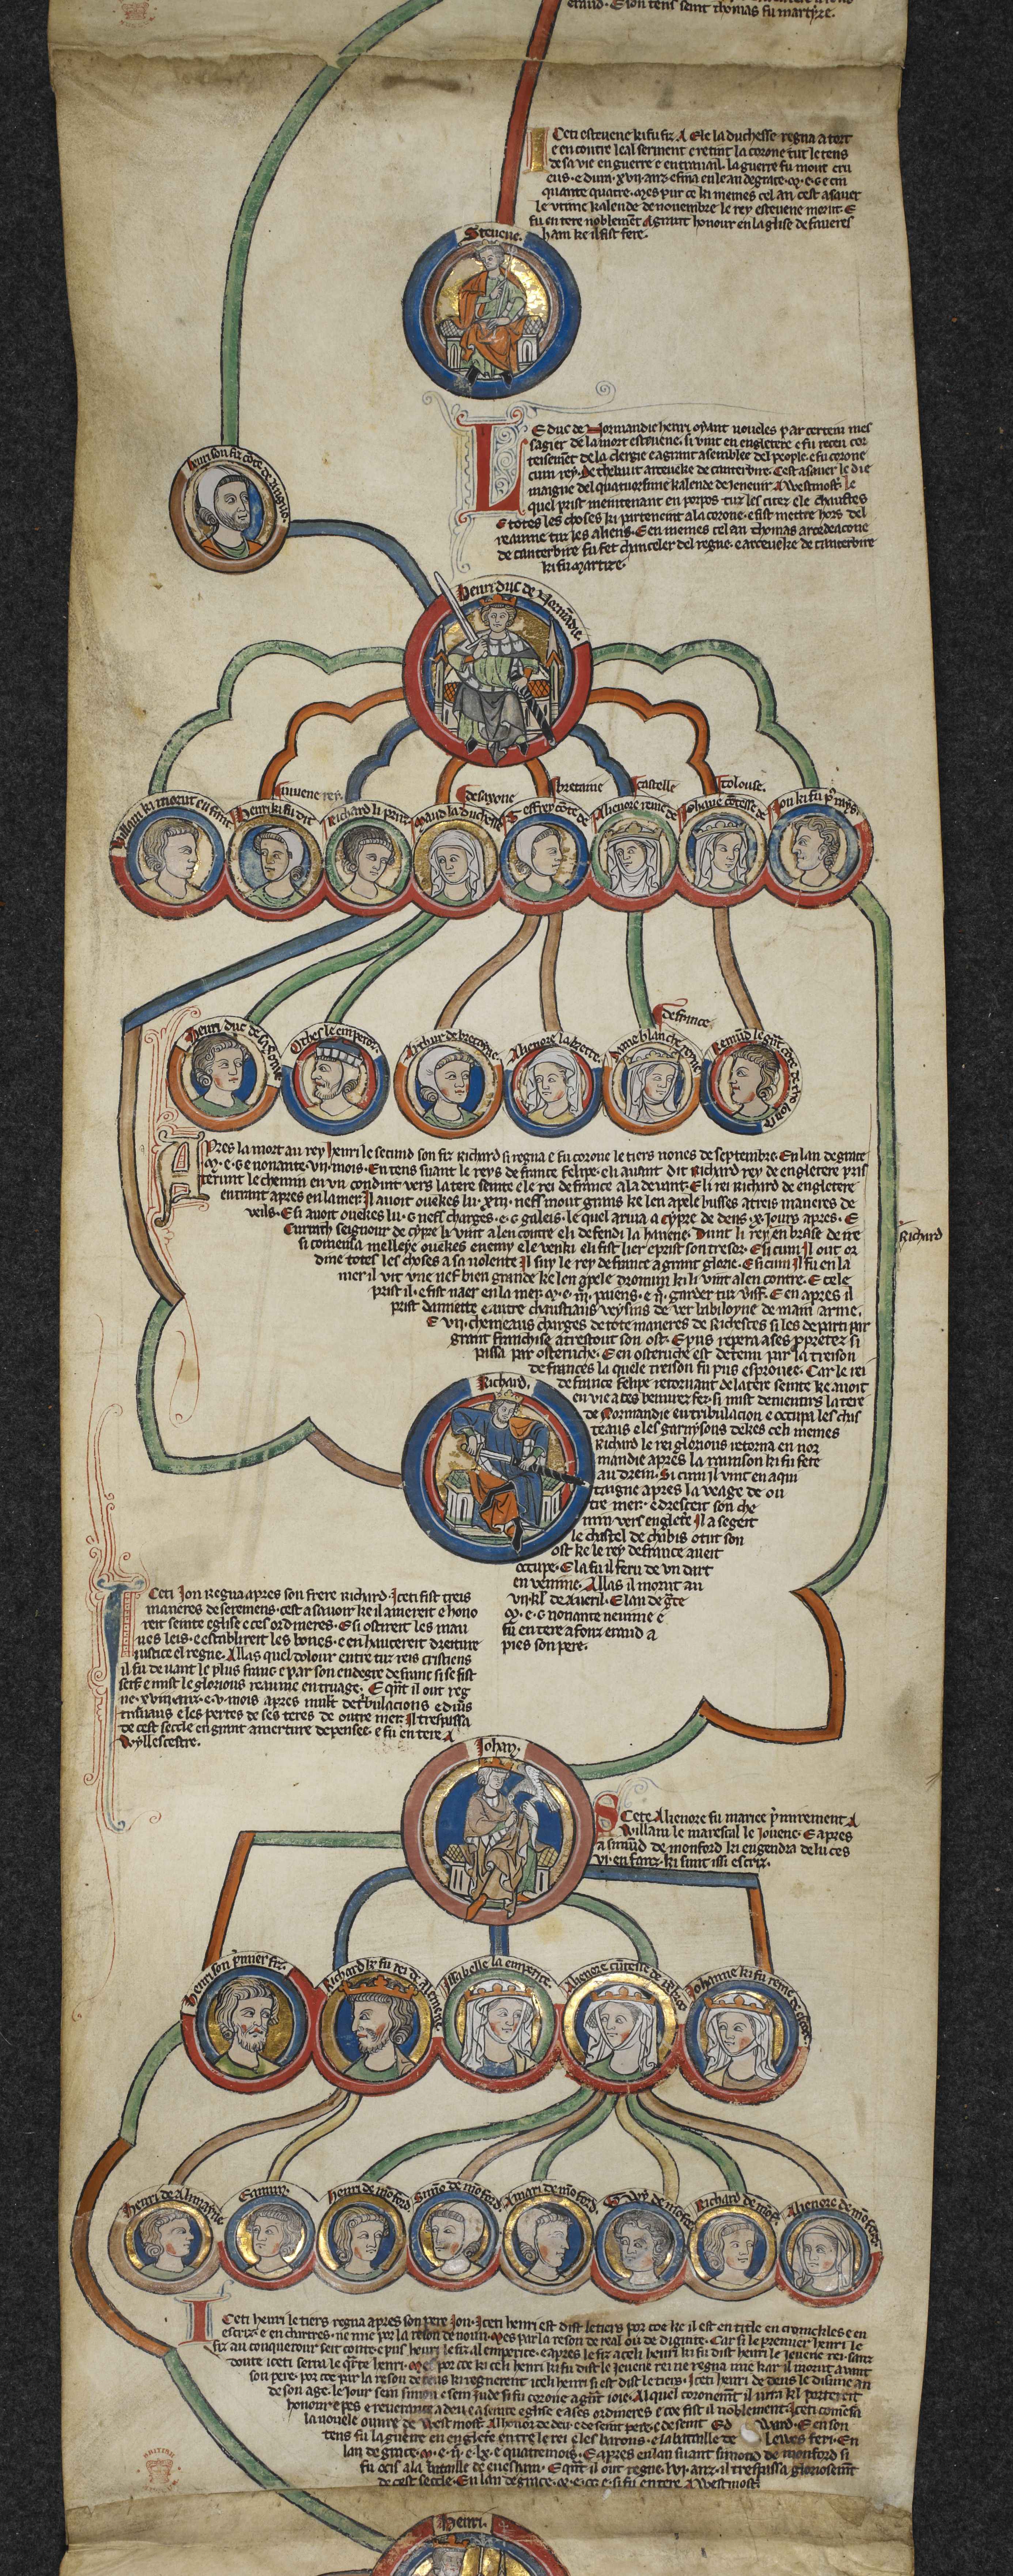 Genealogical chronicle of King John's ancestry, C14, on display in Magna Carta: Law, Liberty, Legacy. Photography © British Library